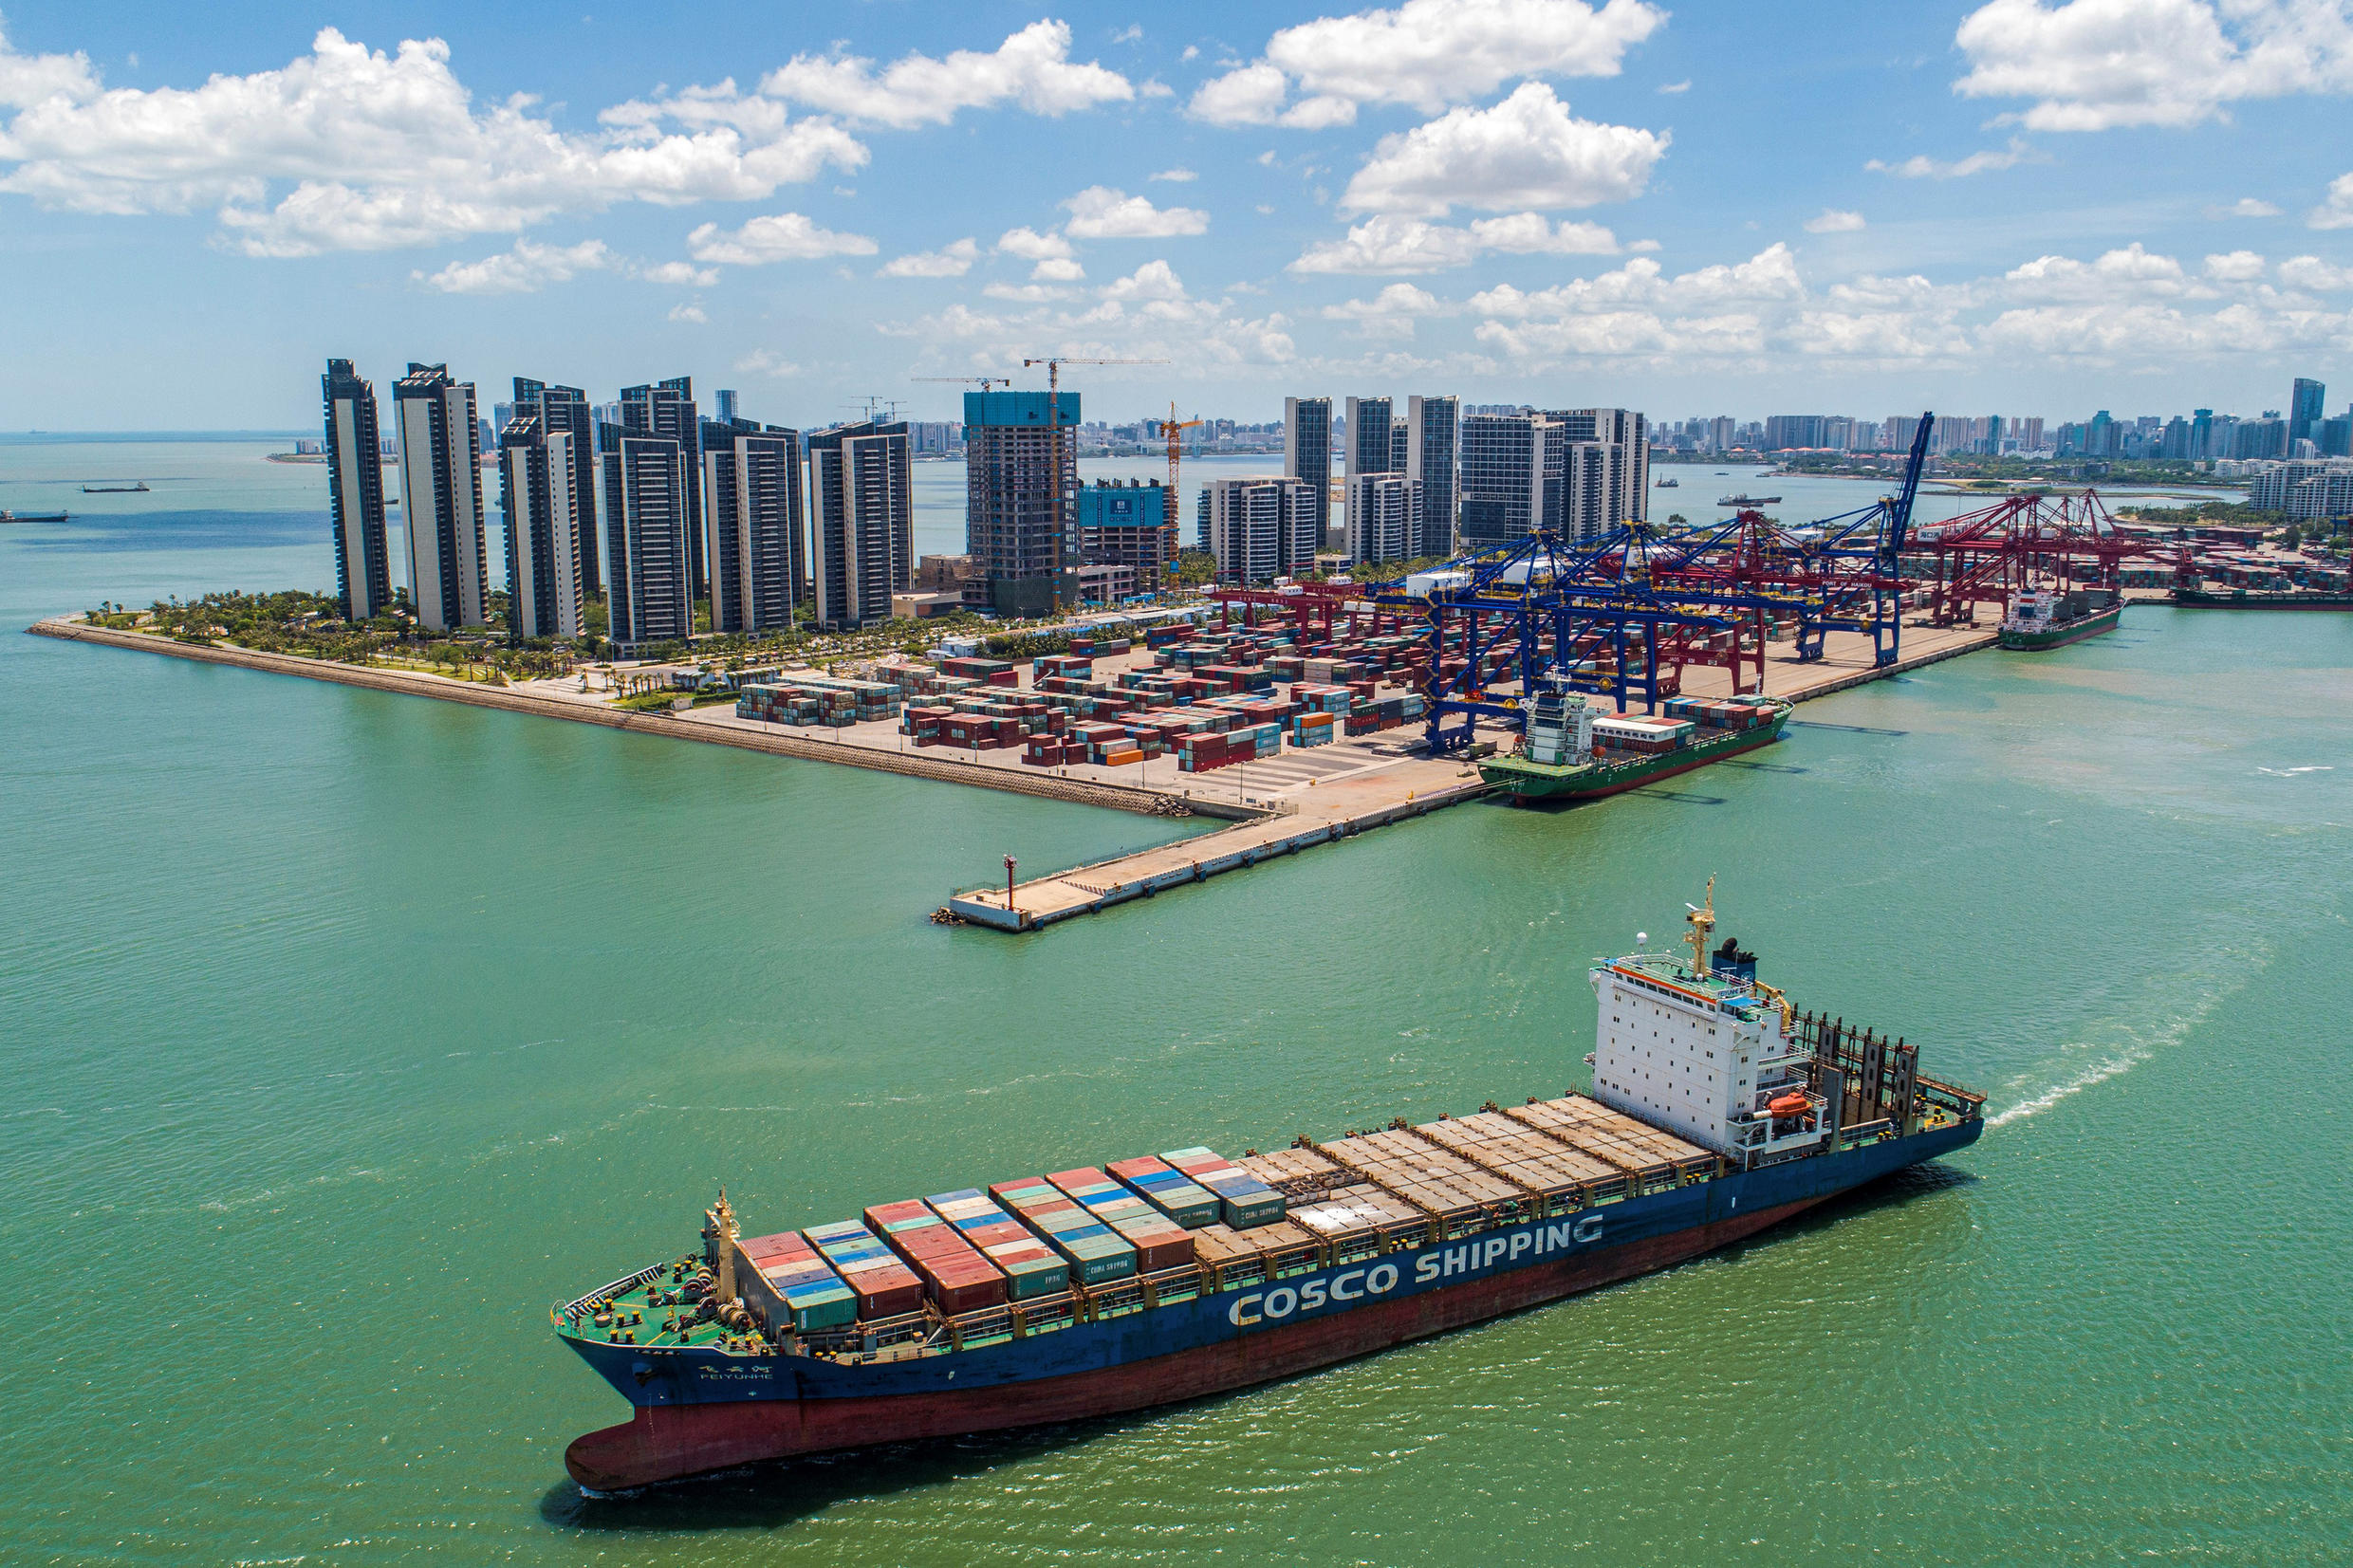 Demand for China's goods has bounced after economically painful lockdowns last year due to the Covid-19 crisis, and as vaccines are rolled out across much of the world